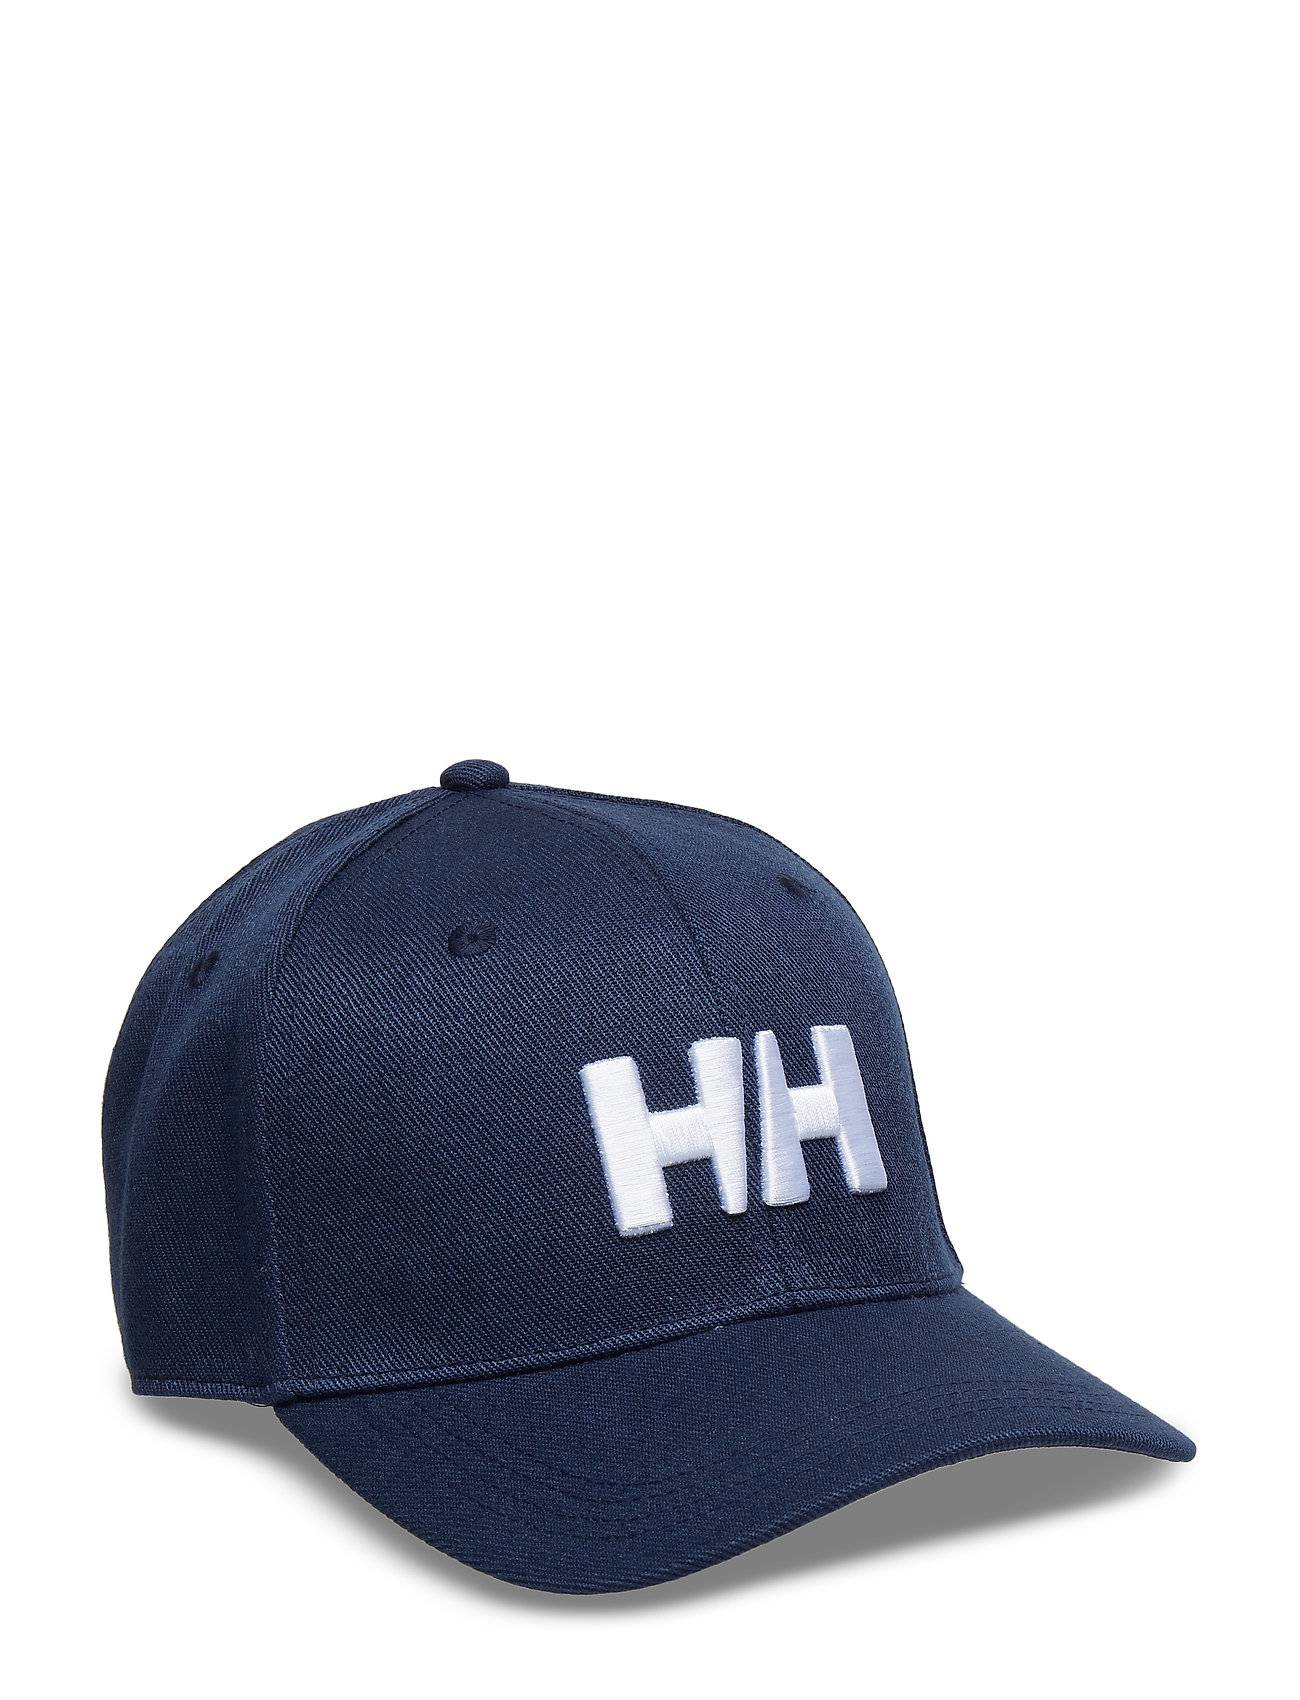 Helly Hansen Hh Brand Cap Accessories Headwear Caps Sininen